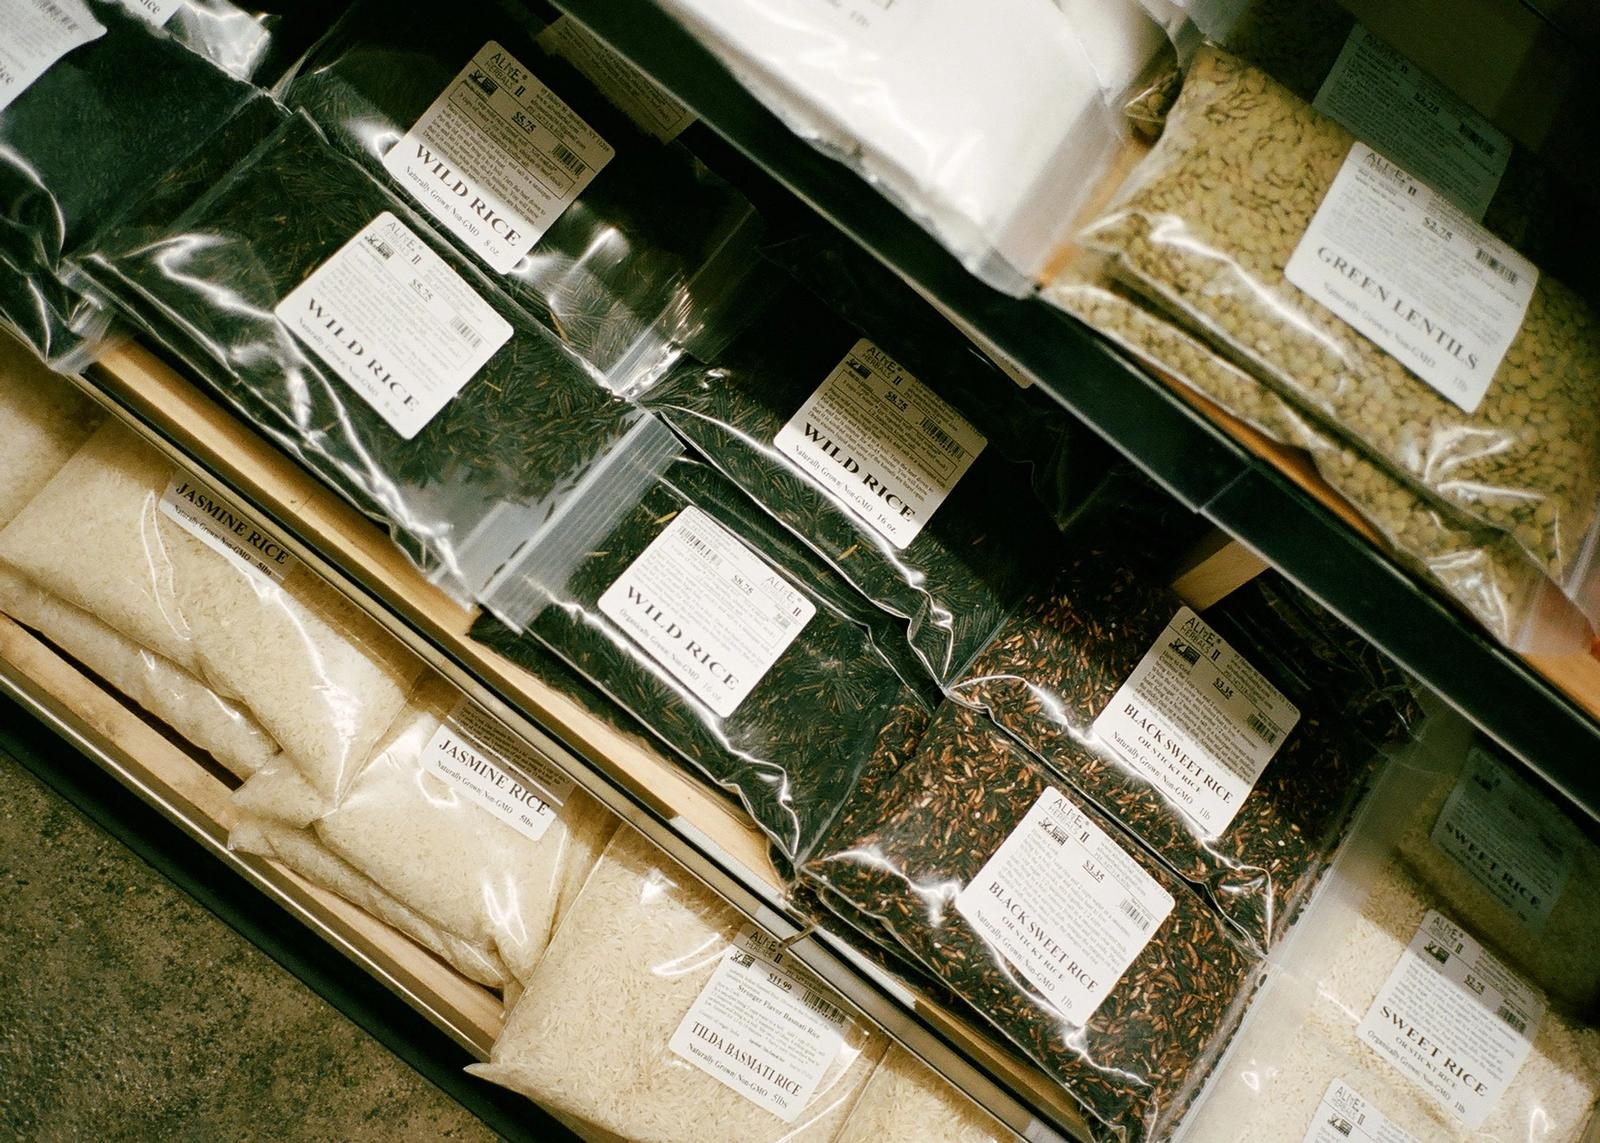 bags of spices for sale at Alive Herbal